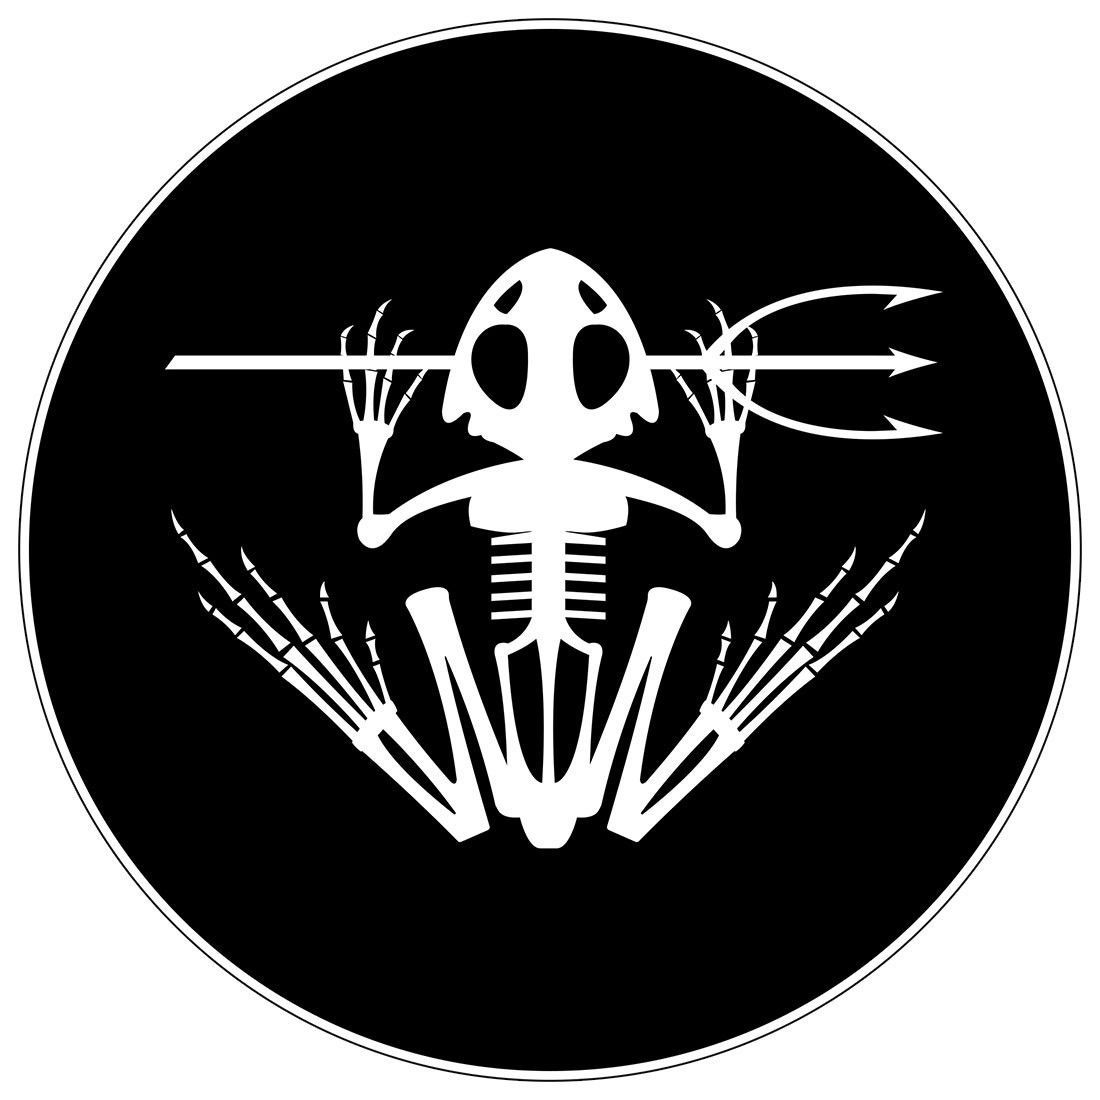 Navy Seal Frog Stickers Various Sizes Available Frogman Udt 0036